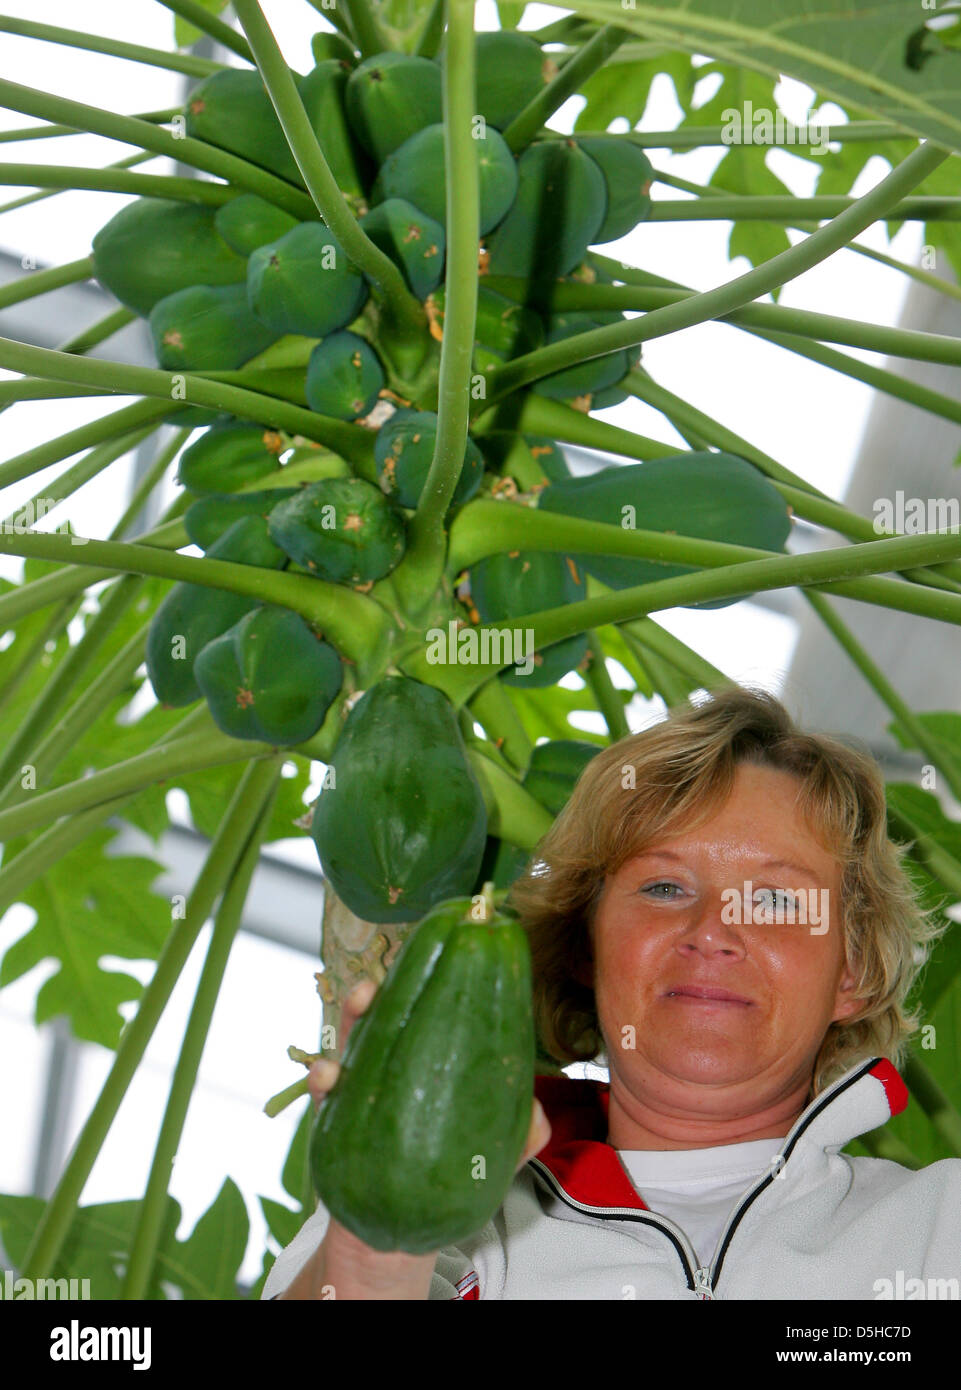 Sylvia Berndt checks out a papaya tree in the tropical ... on strawberry plant, mango plant, pepper plant, guava plant, cashew plant, peanut plant, passion fruit plant, aloe vera plant, dragon fruit plant, hibiscus plant, male plant, radish plant, pomegranate plant, star fruit plant, dates plant, rubber tree plant, avocado plant, green beans plant, peach plant, soybean plant,